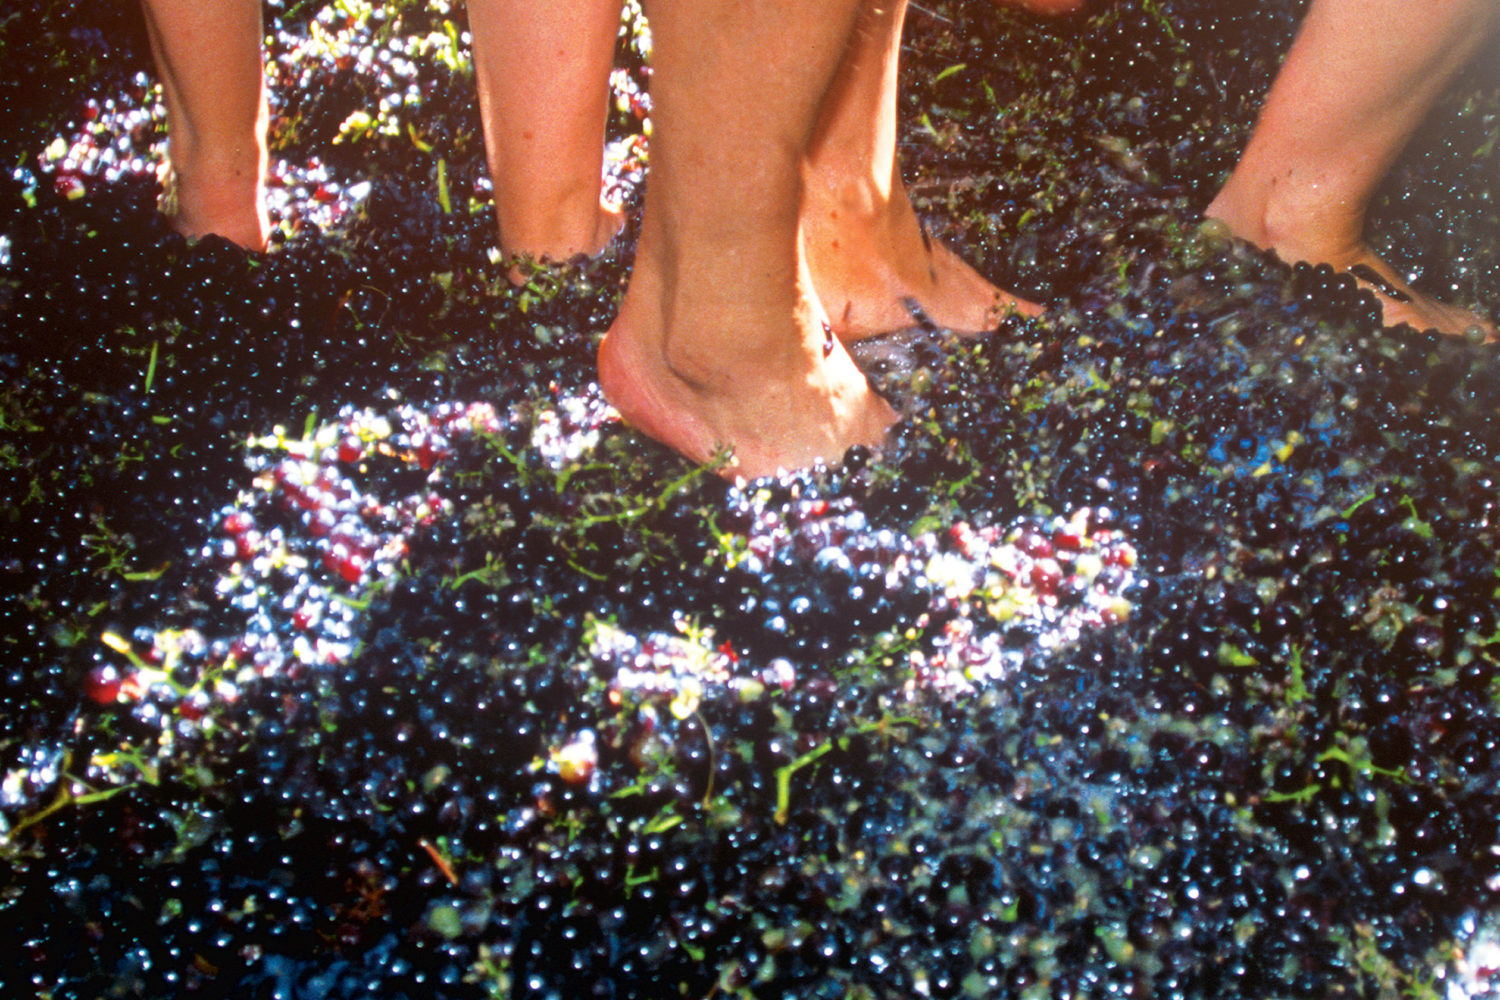 Stomping grounds: Fall wine fests. Photograph Courtesy of Prisma by Dukas Presseagentur/Alamy.